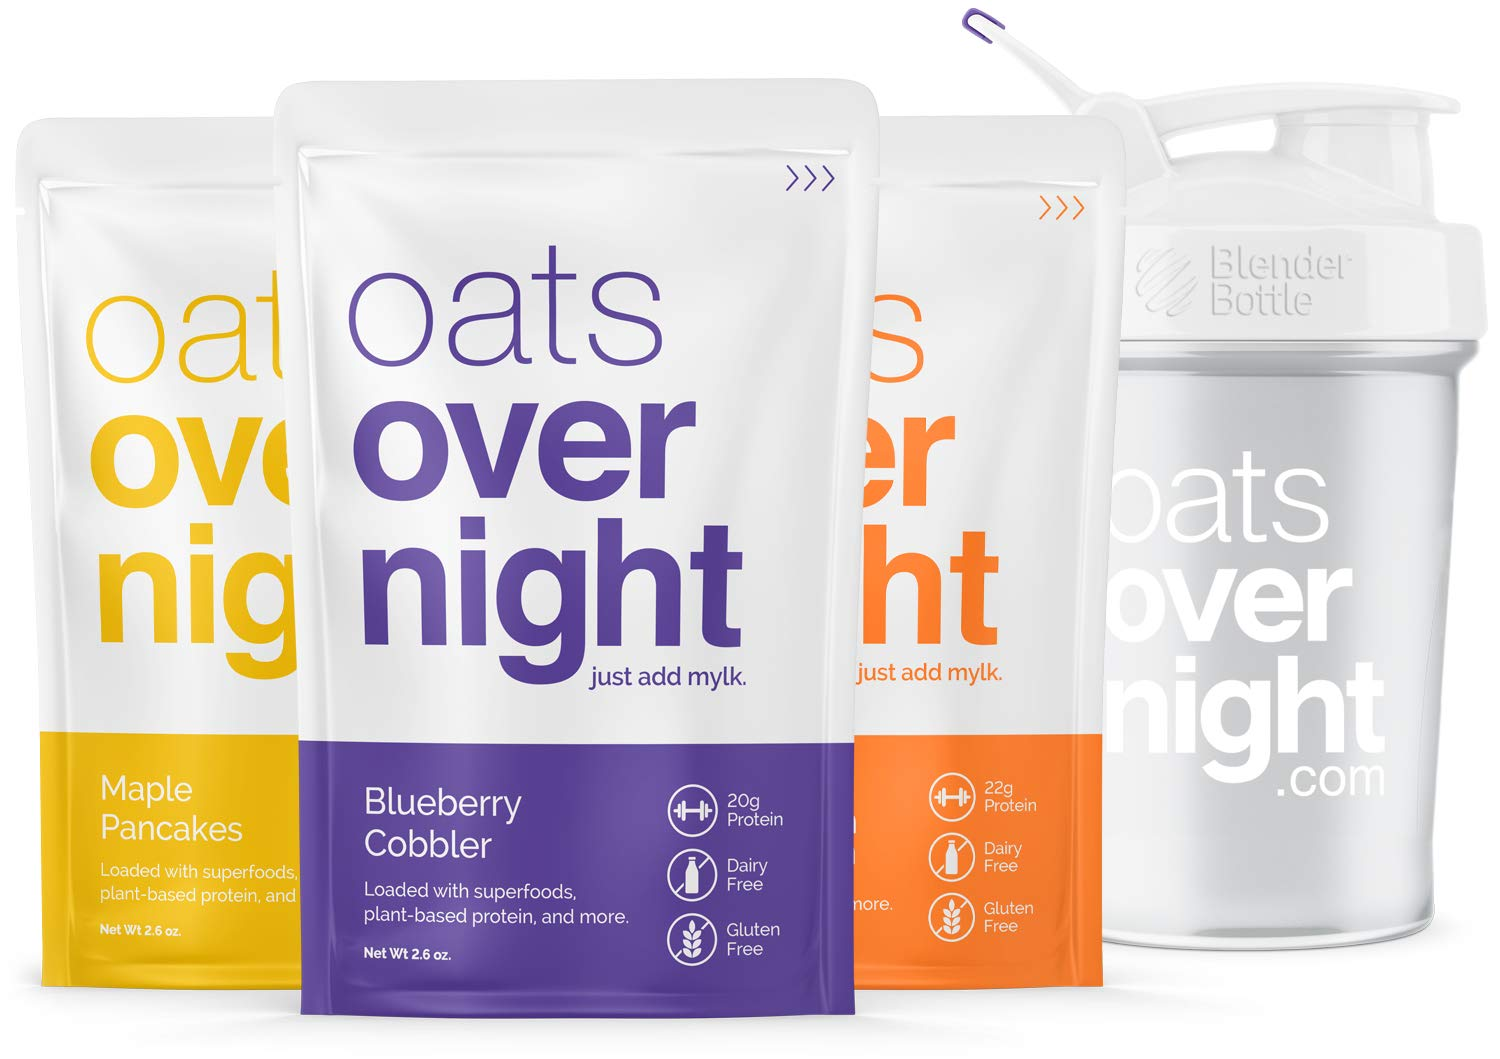 Oats Overnight 24 Pack Plant Based with BlenderBottle - Premium High-Protein, Low-Sugar, Gluten-Free (2.6oz per pack) by Oats Overnight (Image #1)